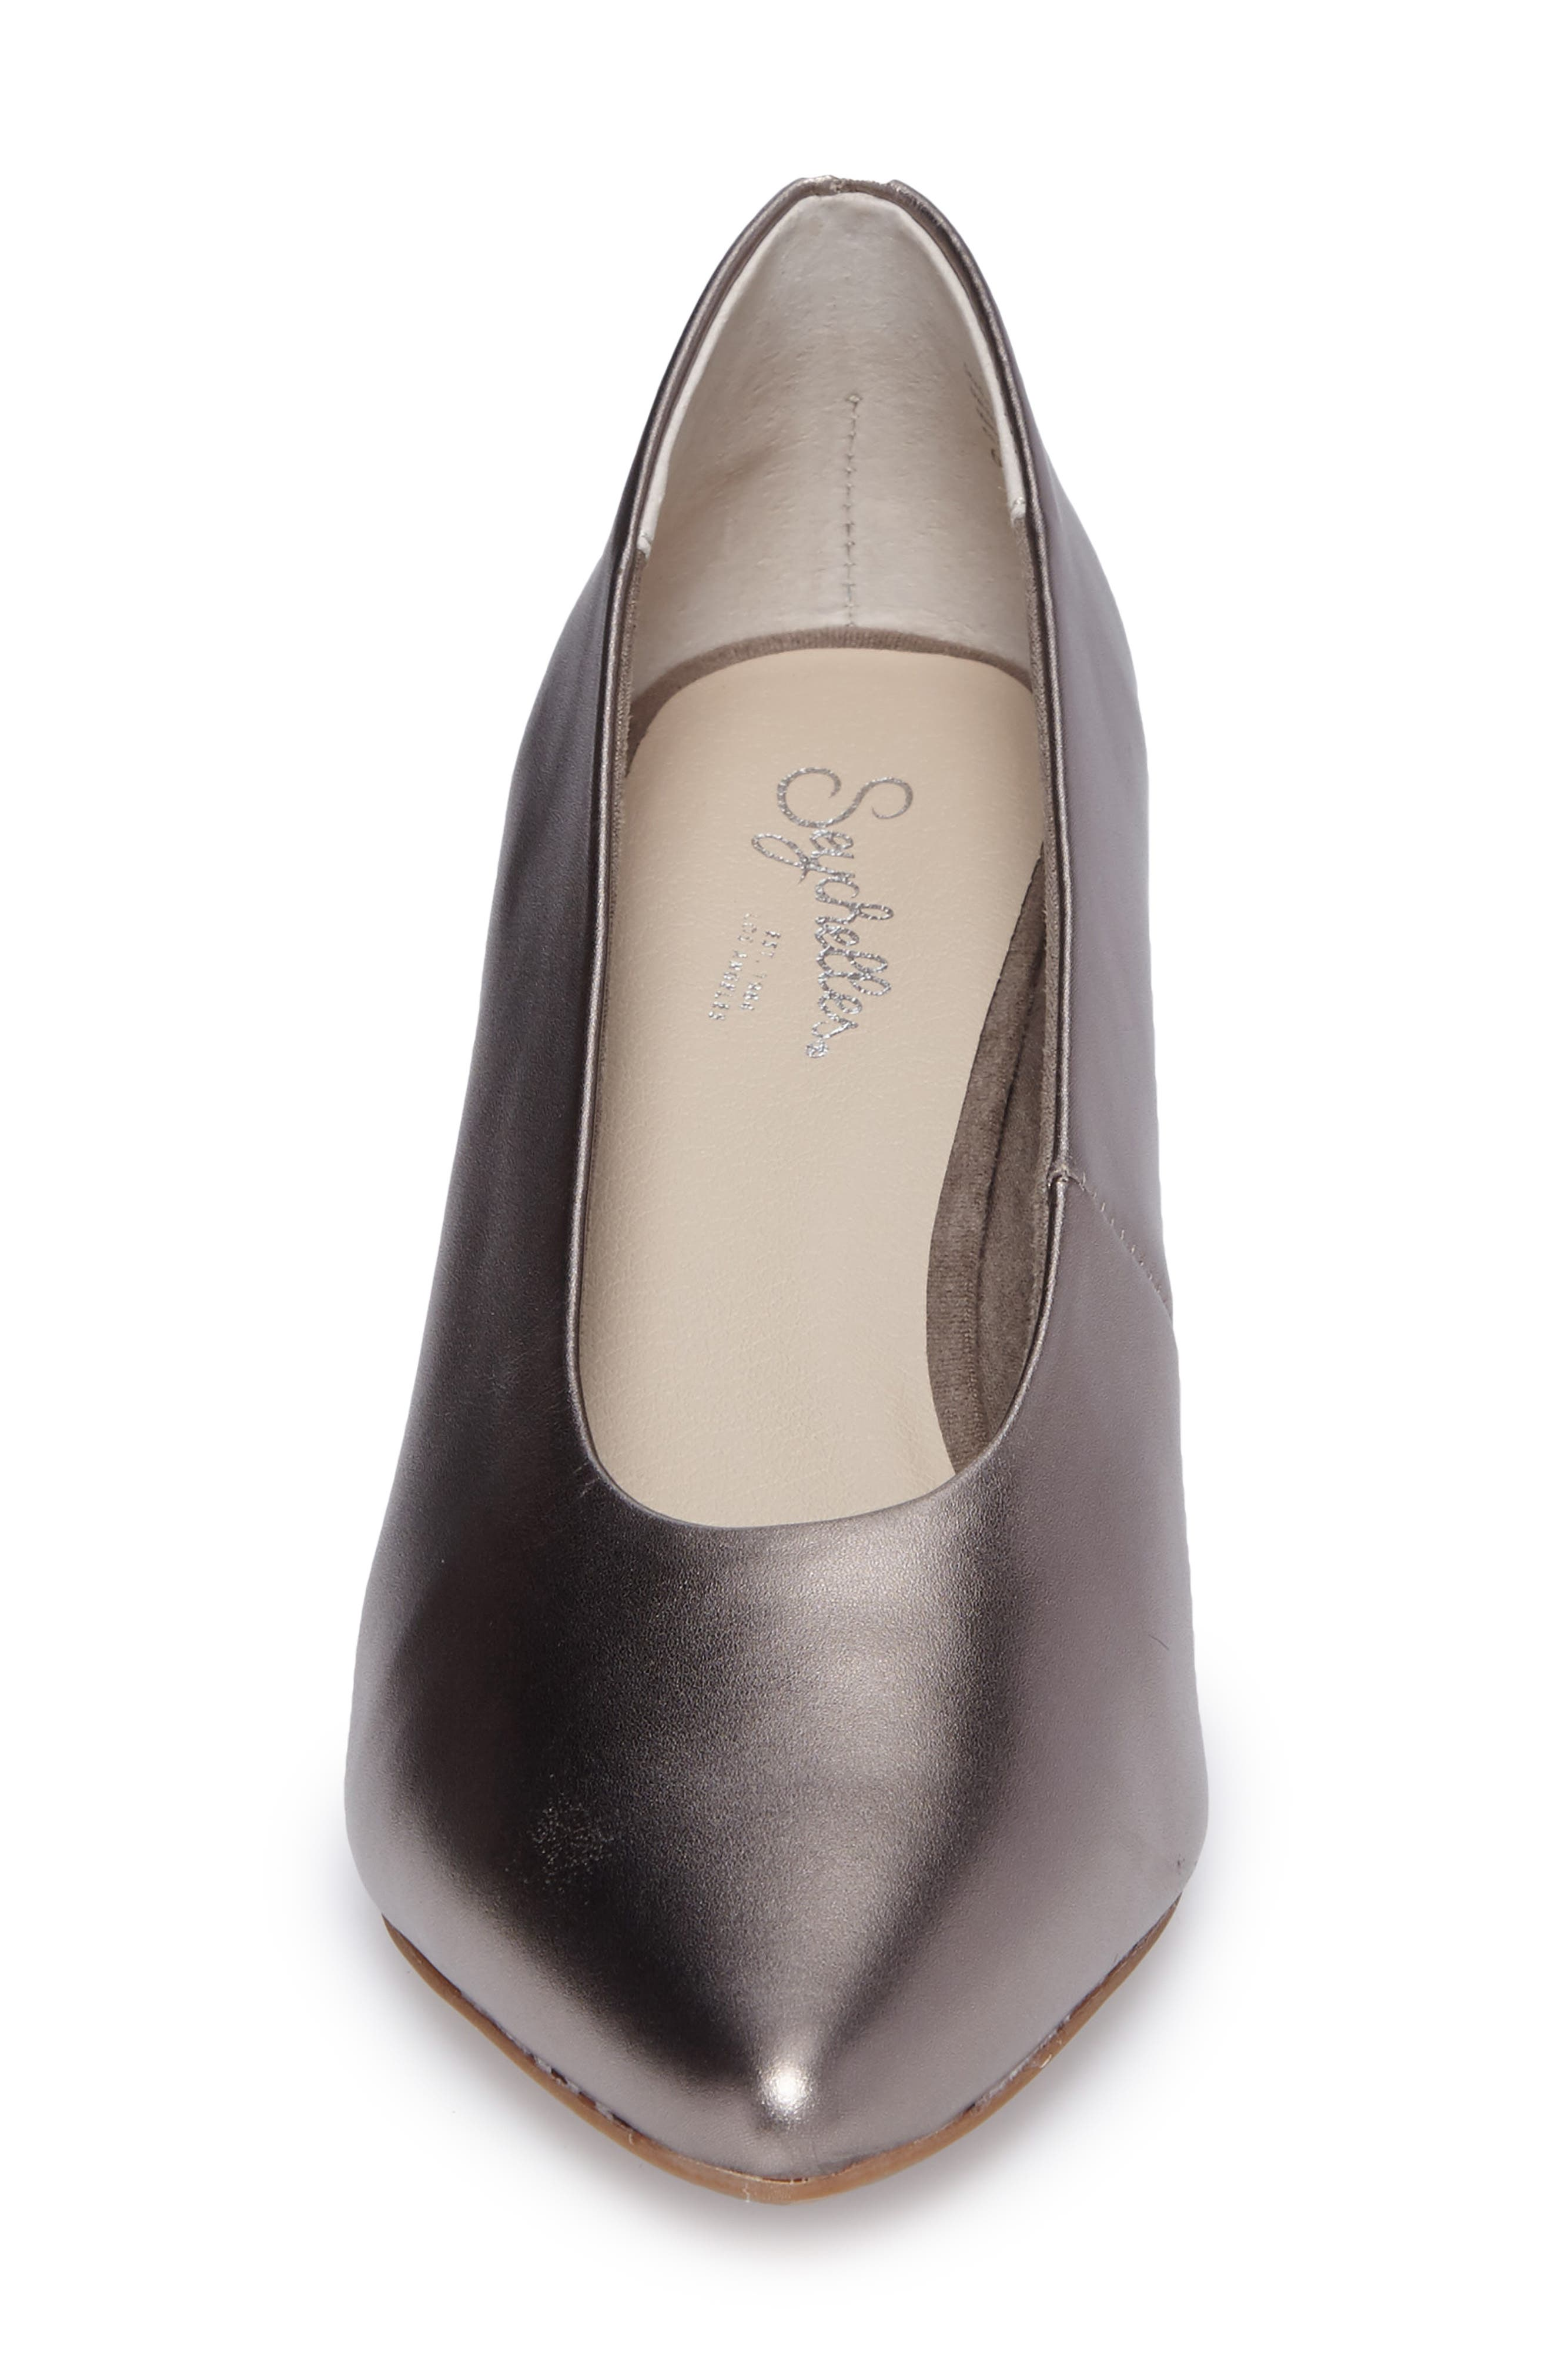 Rehearse Pointy Toe Pump,                             Alternate thumbnail 14, color,